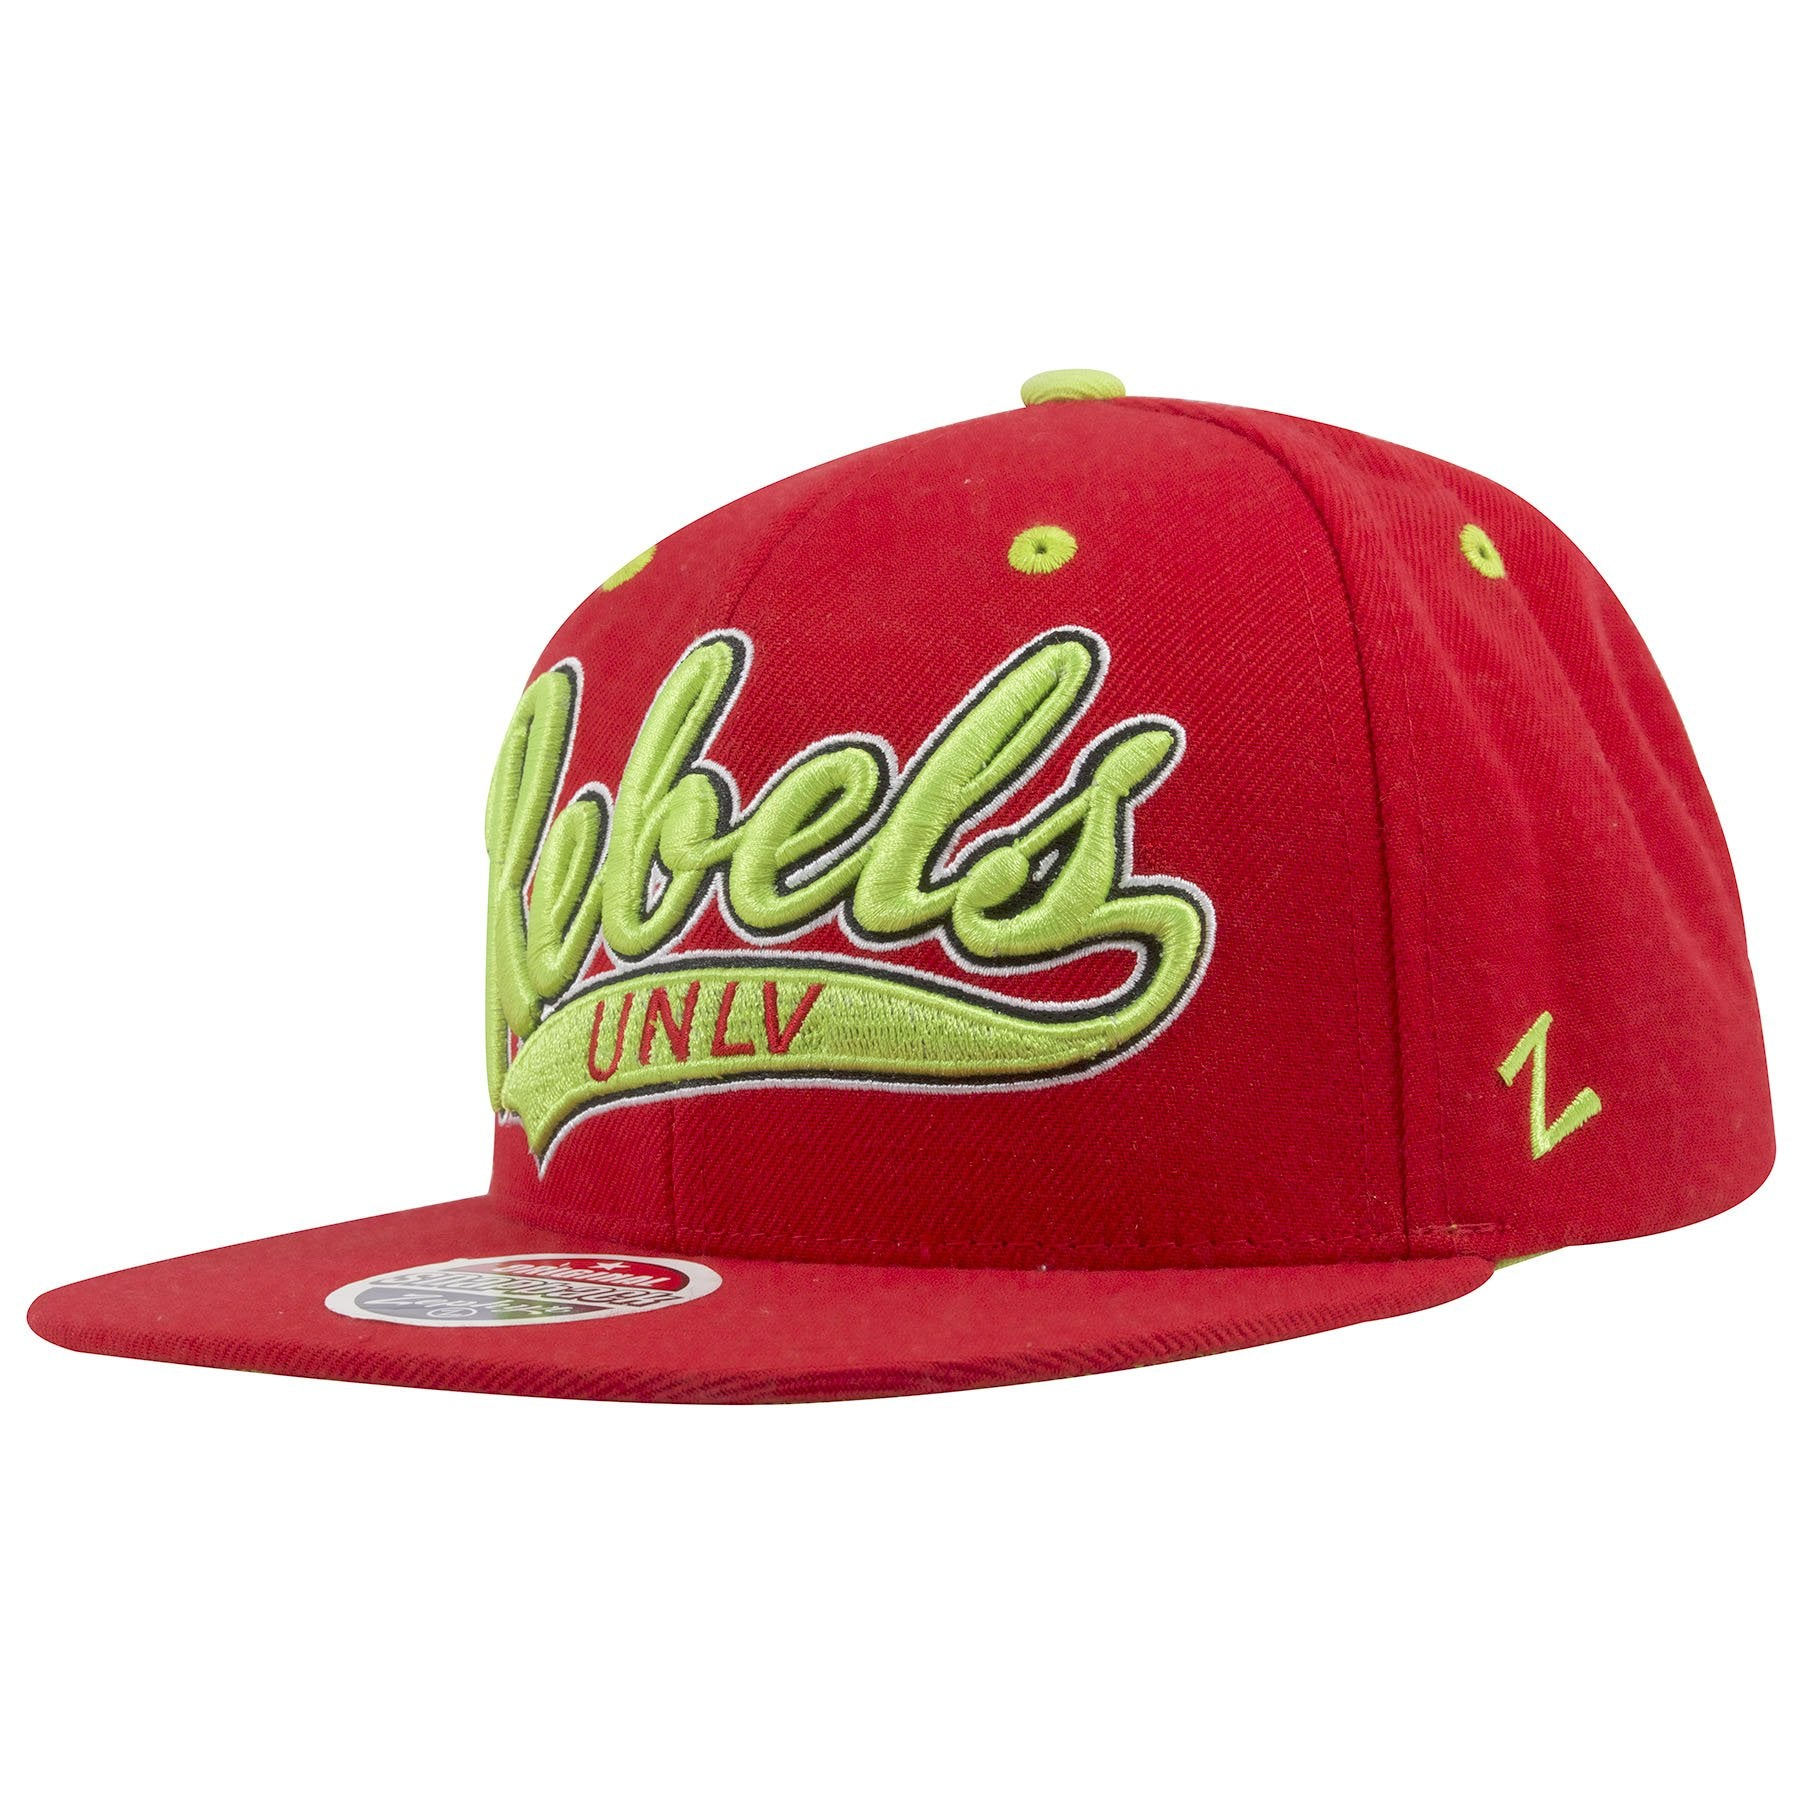 2f4d495b08820 ... on the left side of the university of las vegas runnin rebels snapback  hat is the ...